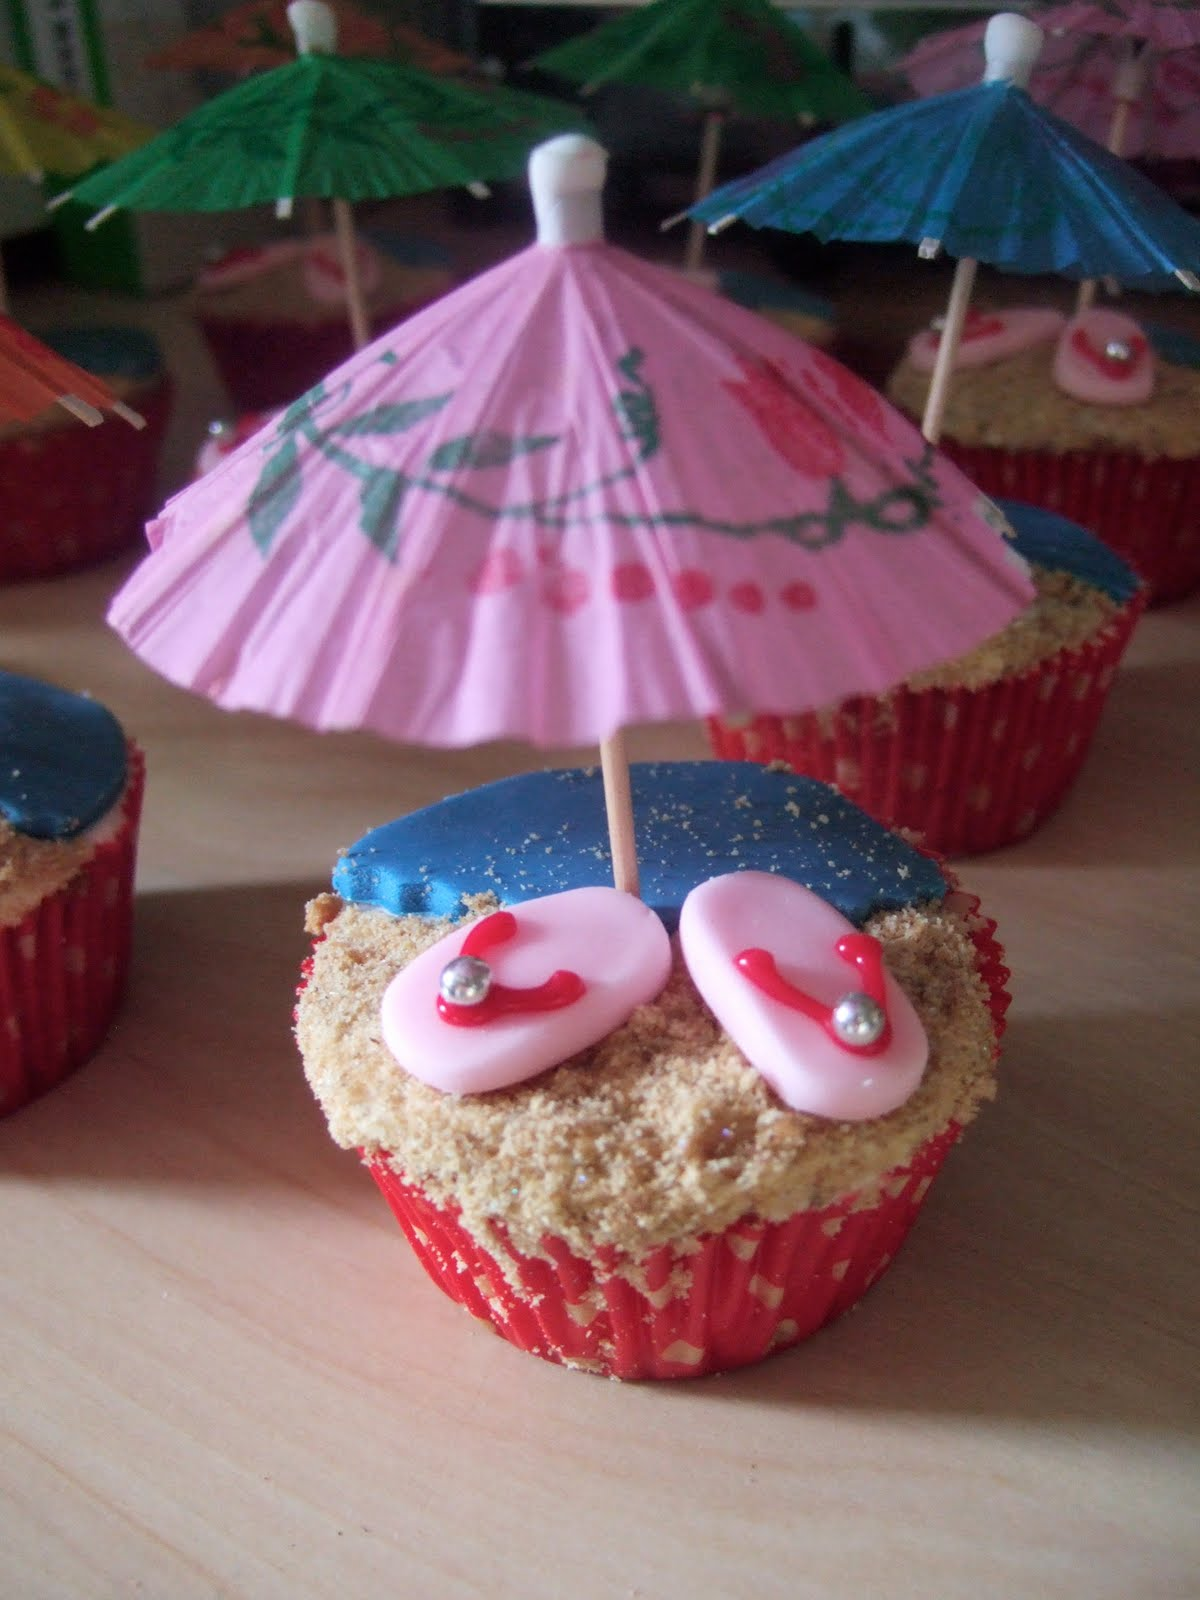 Images Of Party Cupcake : Beach Party time! Luau / Hawaii cupcakesxLairy the ...